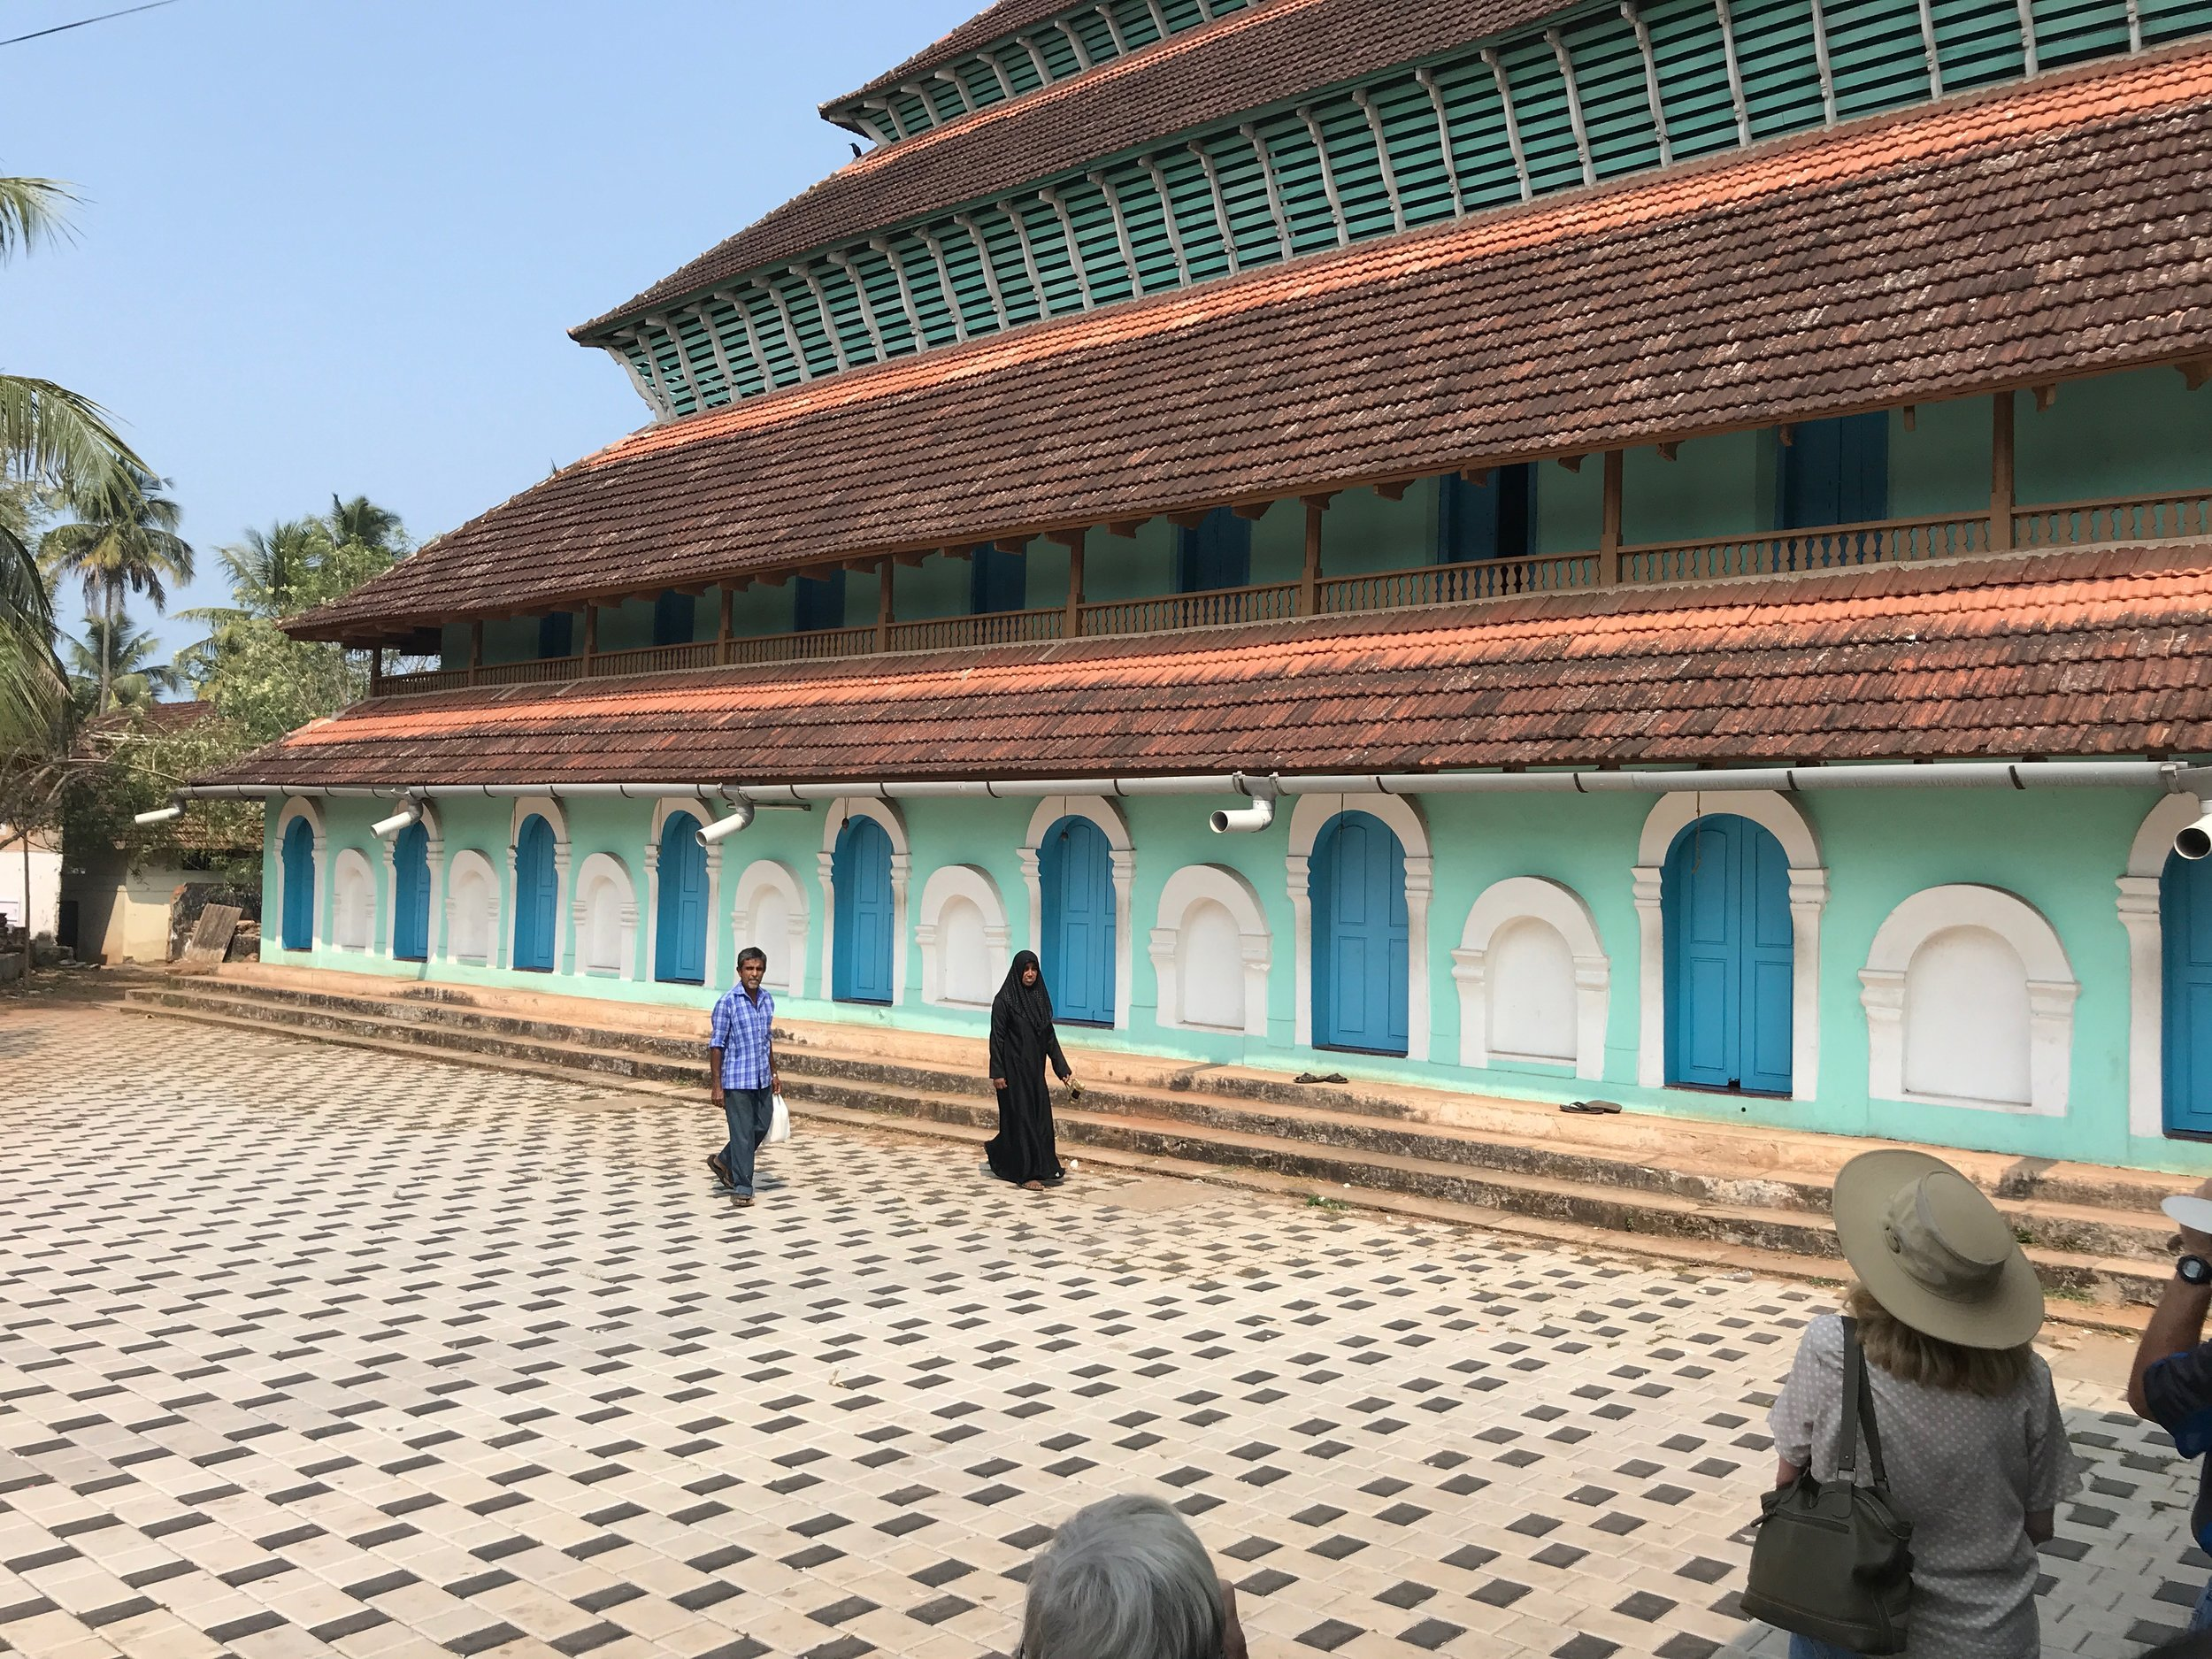 Ibn Battuta visited this mosque in Calicut (Kozhikode), a busy port on India's Malabar coast, early in 1342.